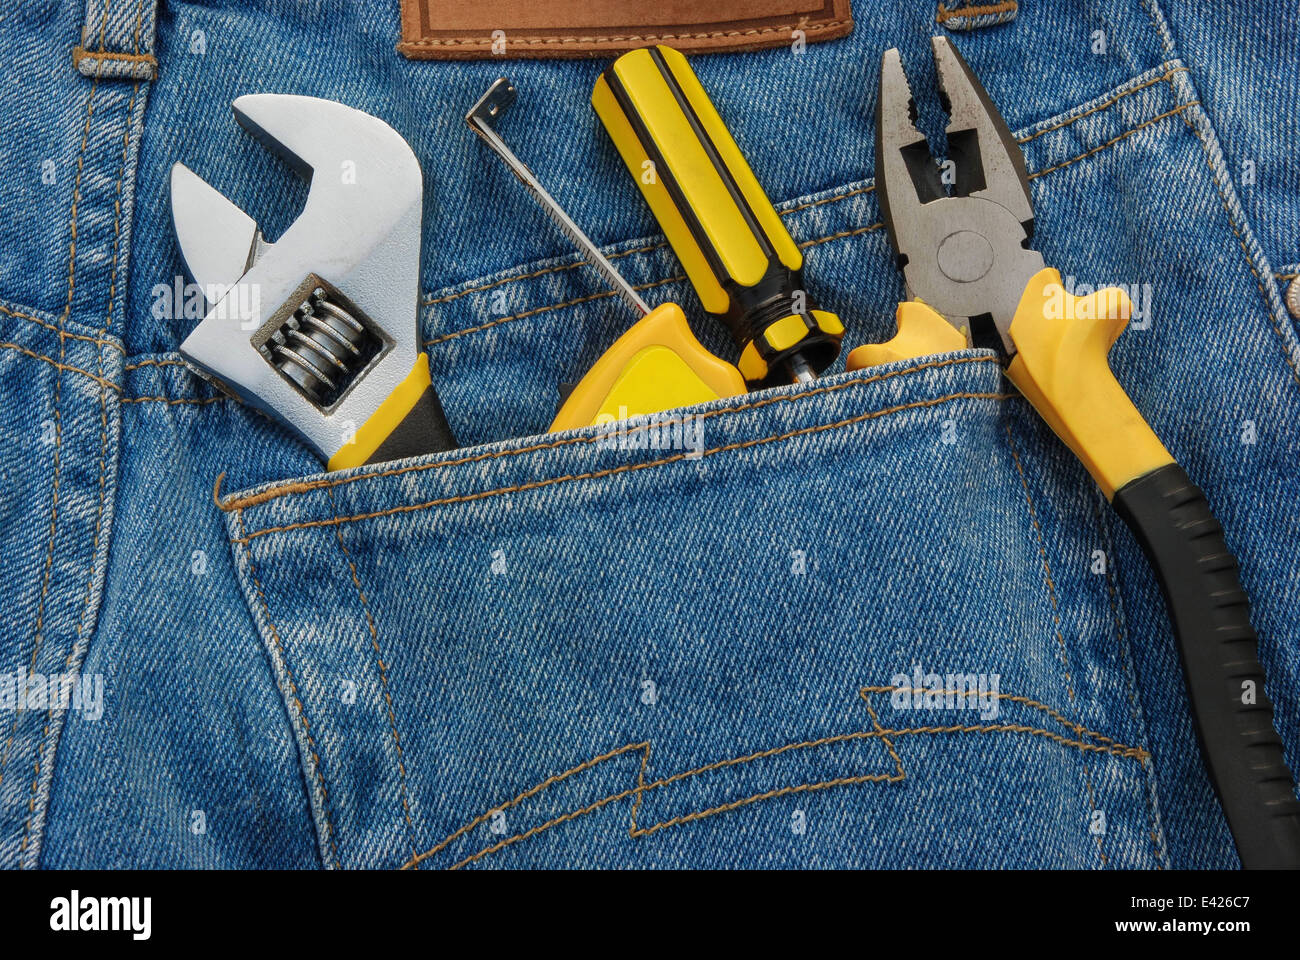 tools in a blue jean back pocket - Stock Image